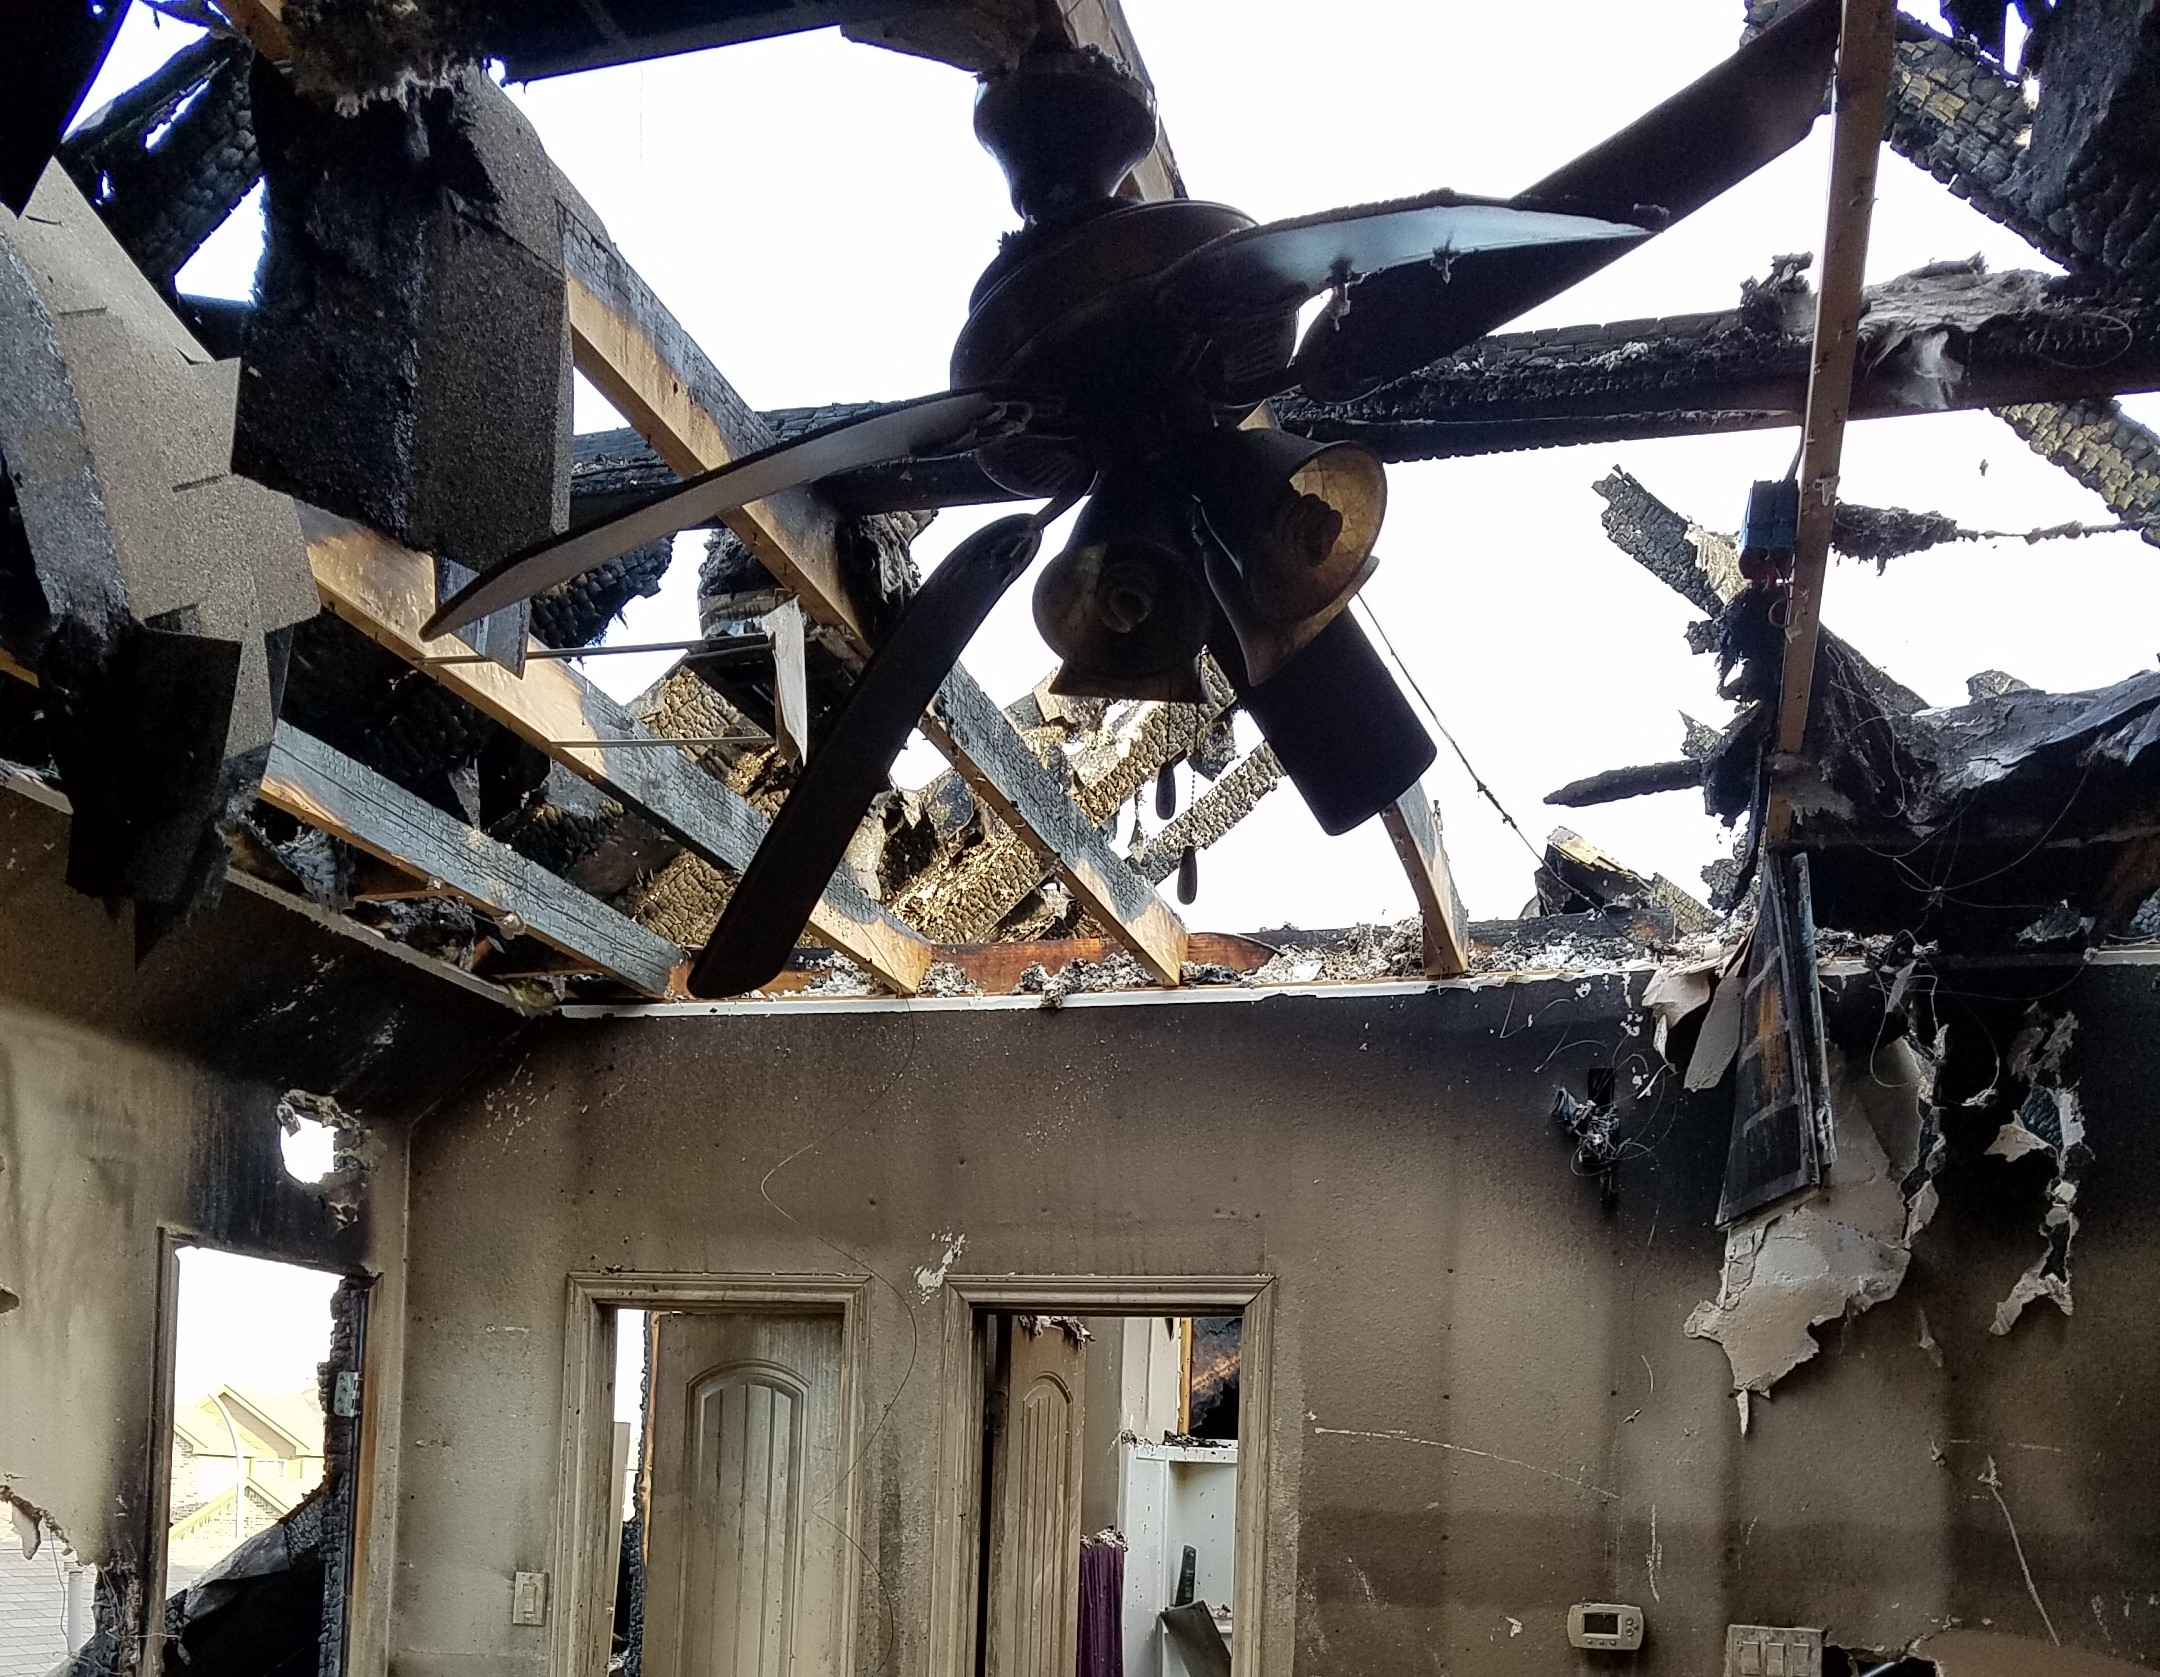 Fire Damage to Your Home: What to Expect - Claimside ...